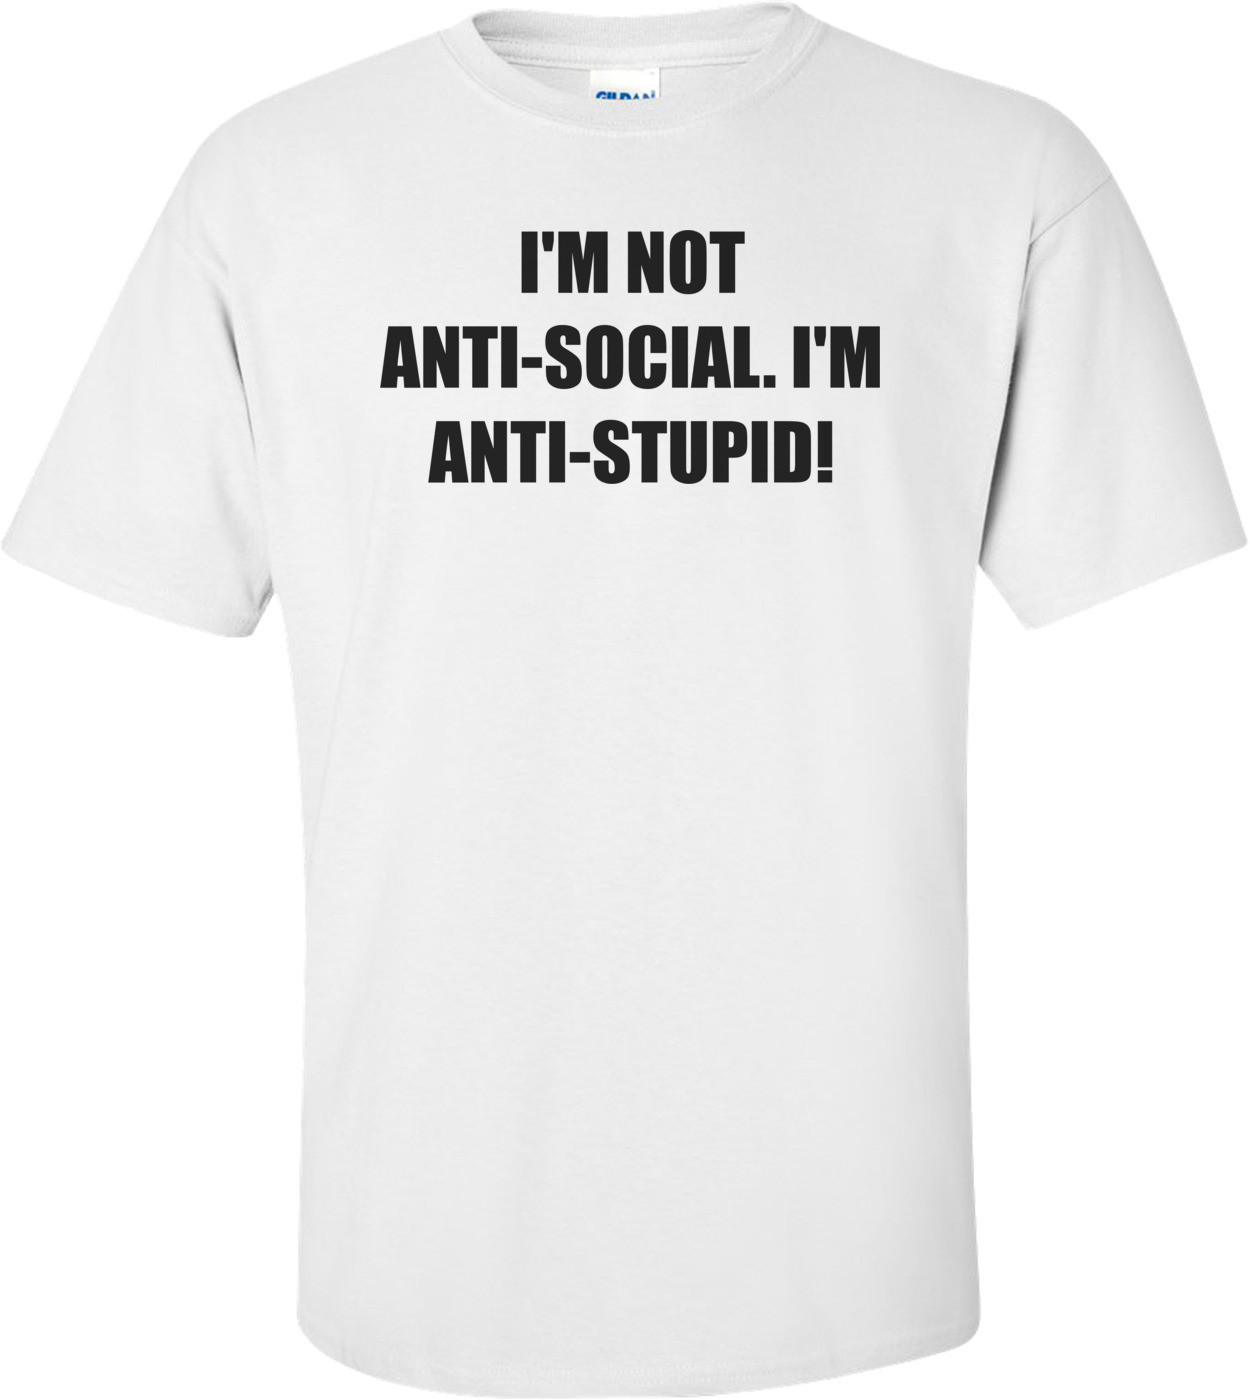 I'M NOT ANTI-SOCIAL. I'M ANTI-STUPID! Shirt